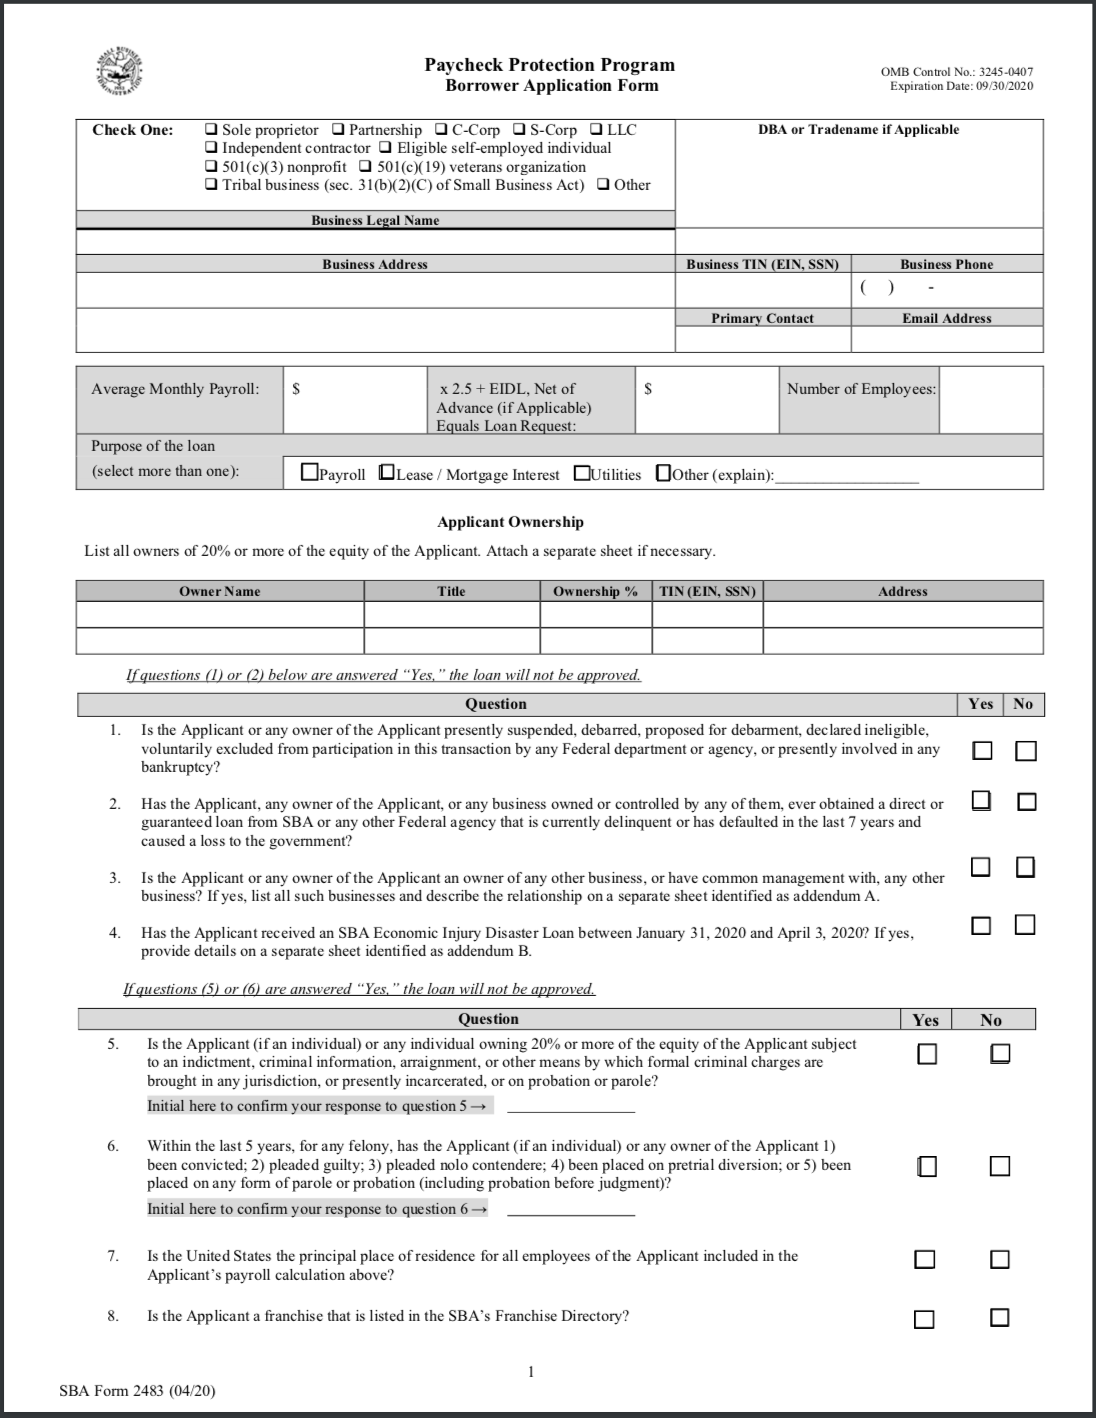 Paycheck Protection Program Application And Required